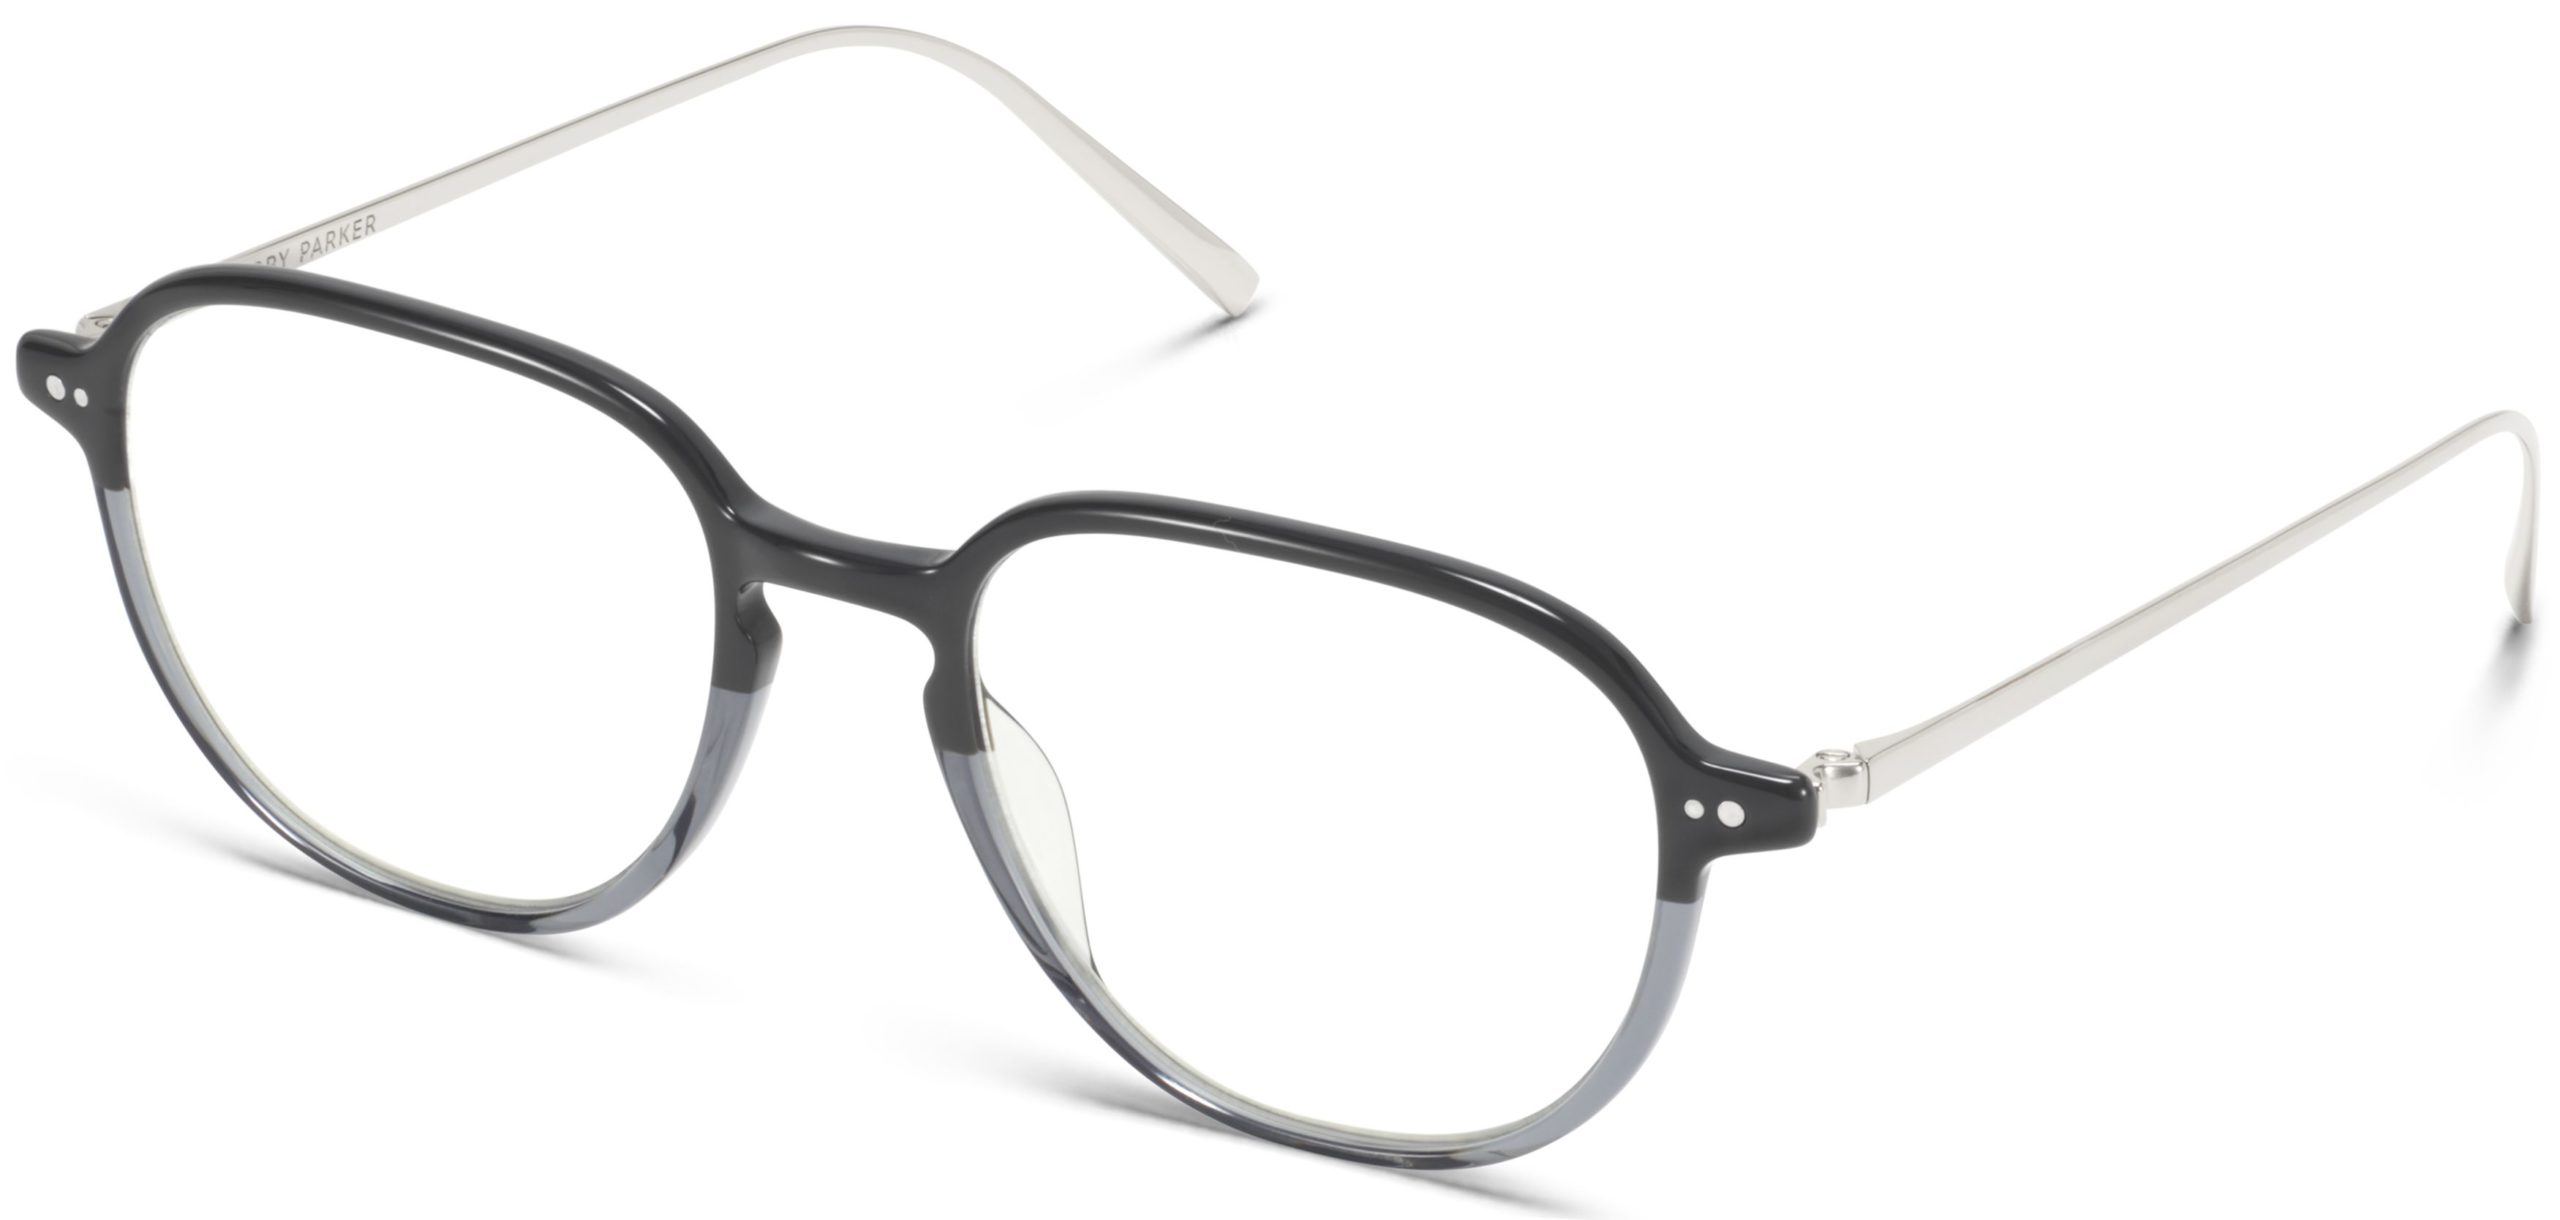 Angle View Image of Beasley Eyeglasses Collection, by Warby Parker Brand, in Stone Fade with Polished Silver Color